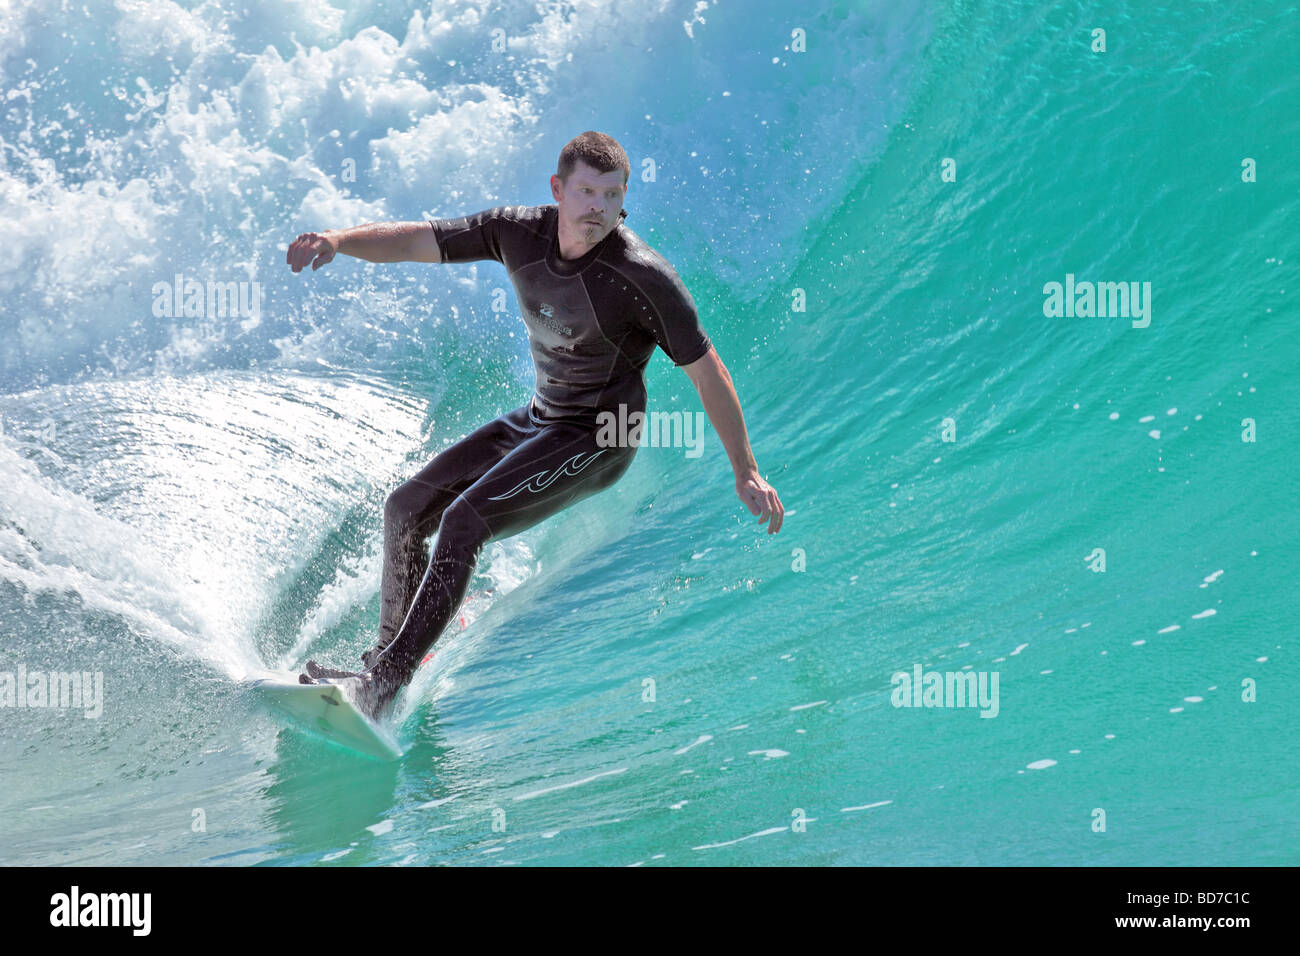 Surfer captures a wave for a ride into the shore late afternoon Stock Photo